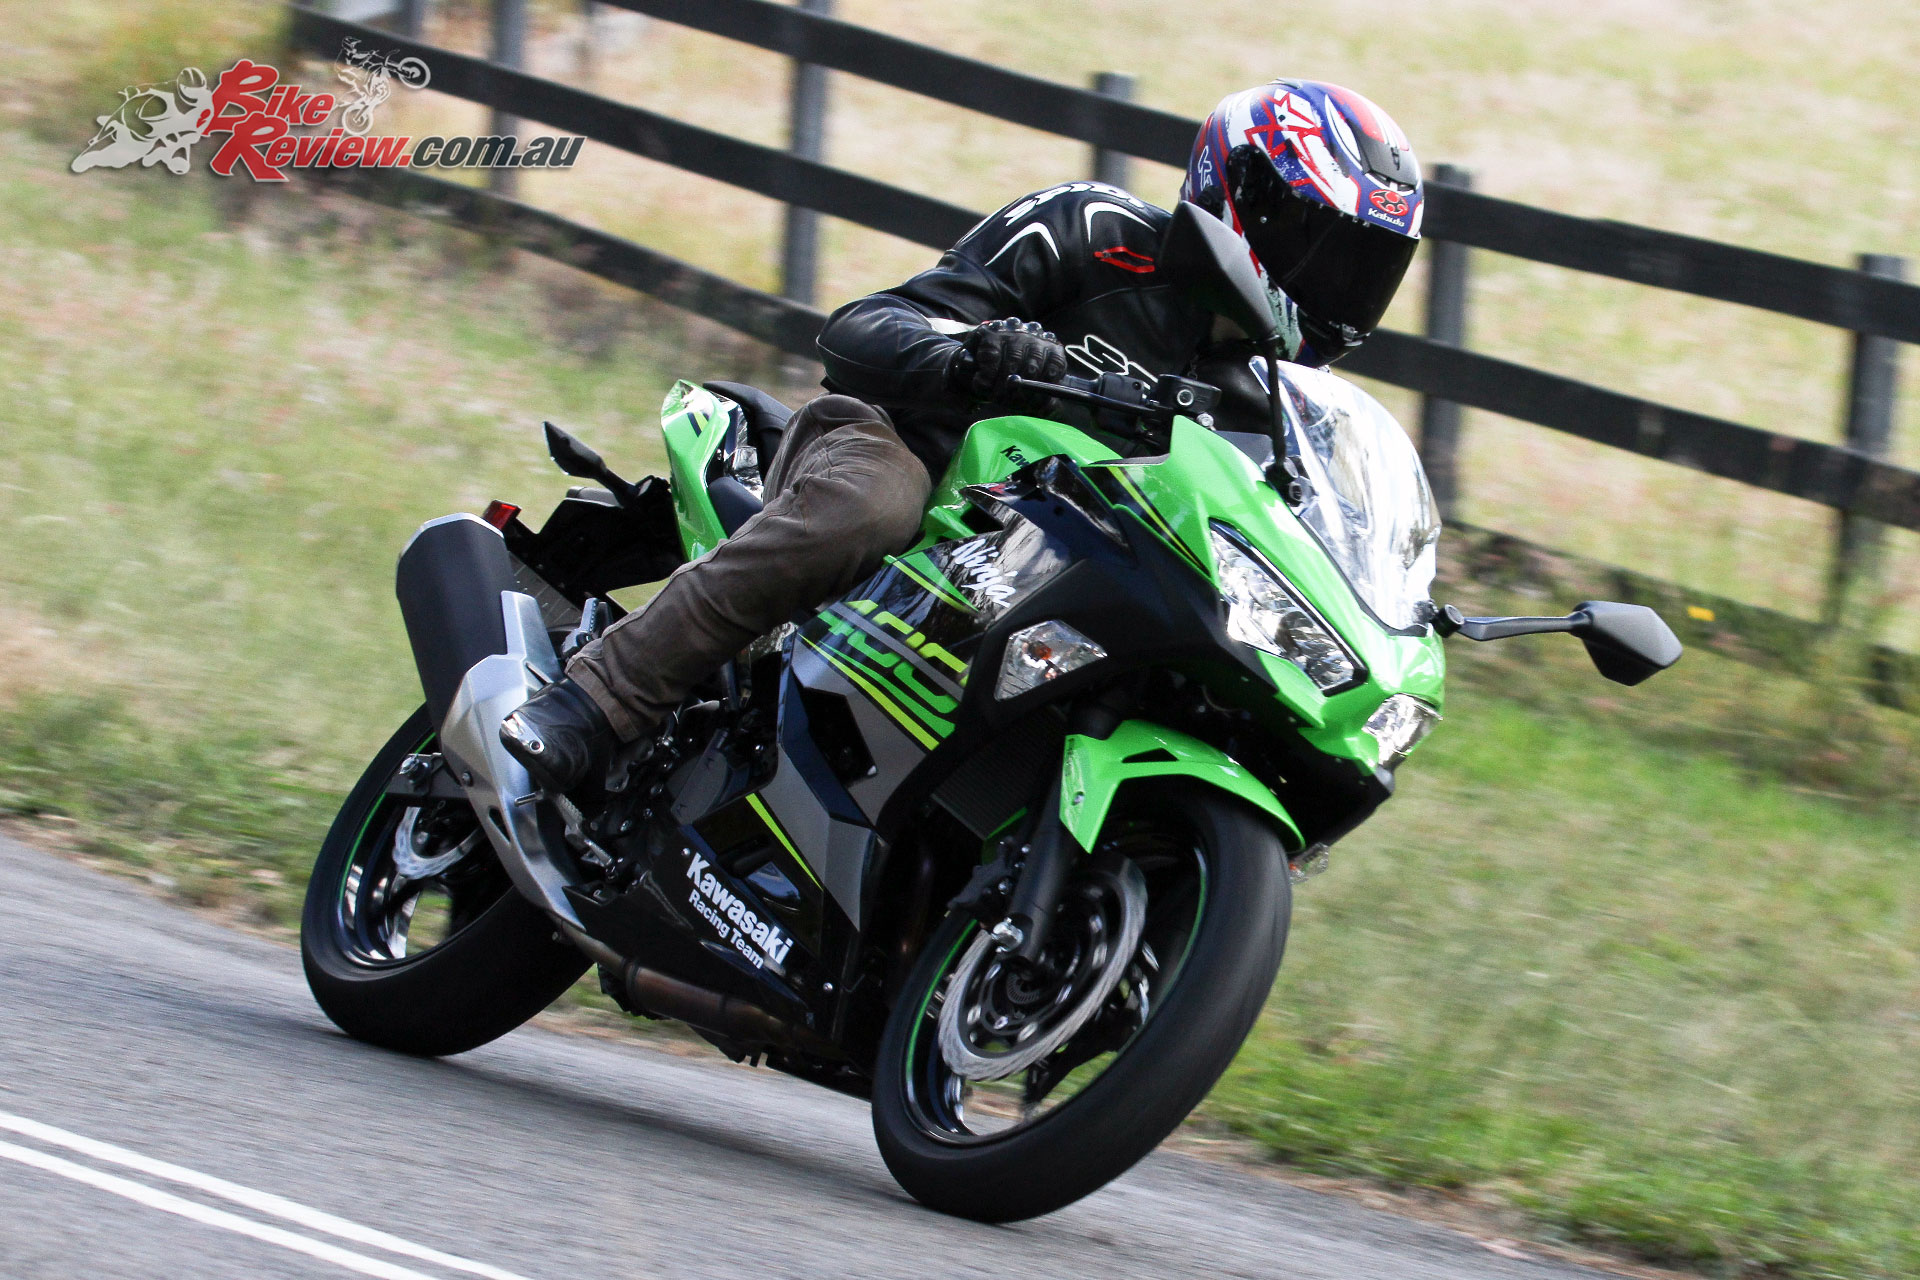 review 2018 kawasaki ninja 400 lams road test bike review. Black Bedroom Furniture Sets. Home Design Ideas